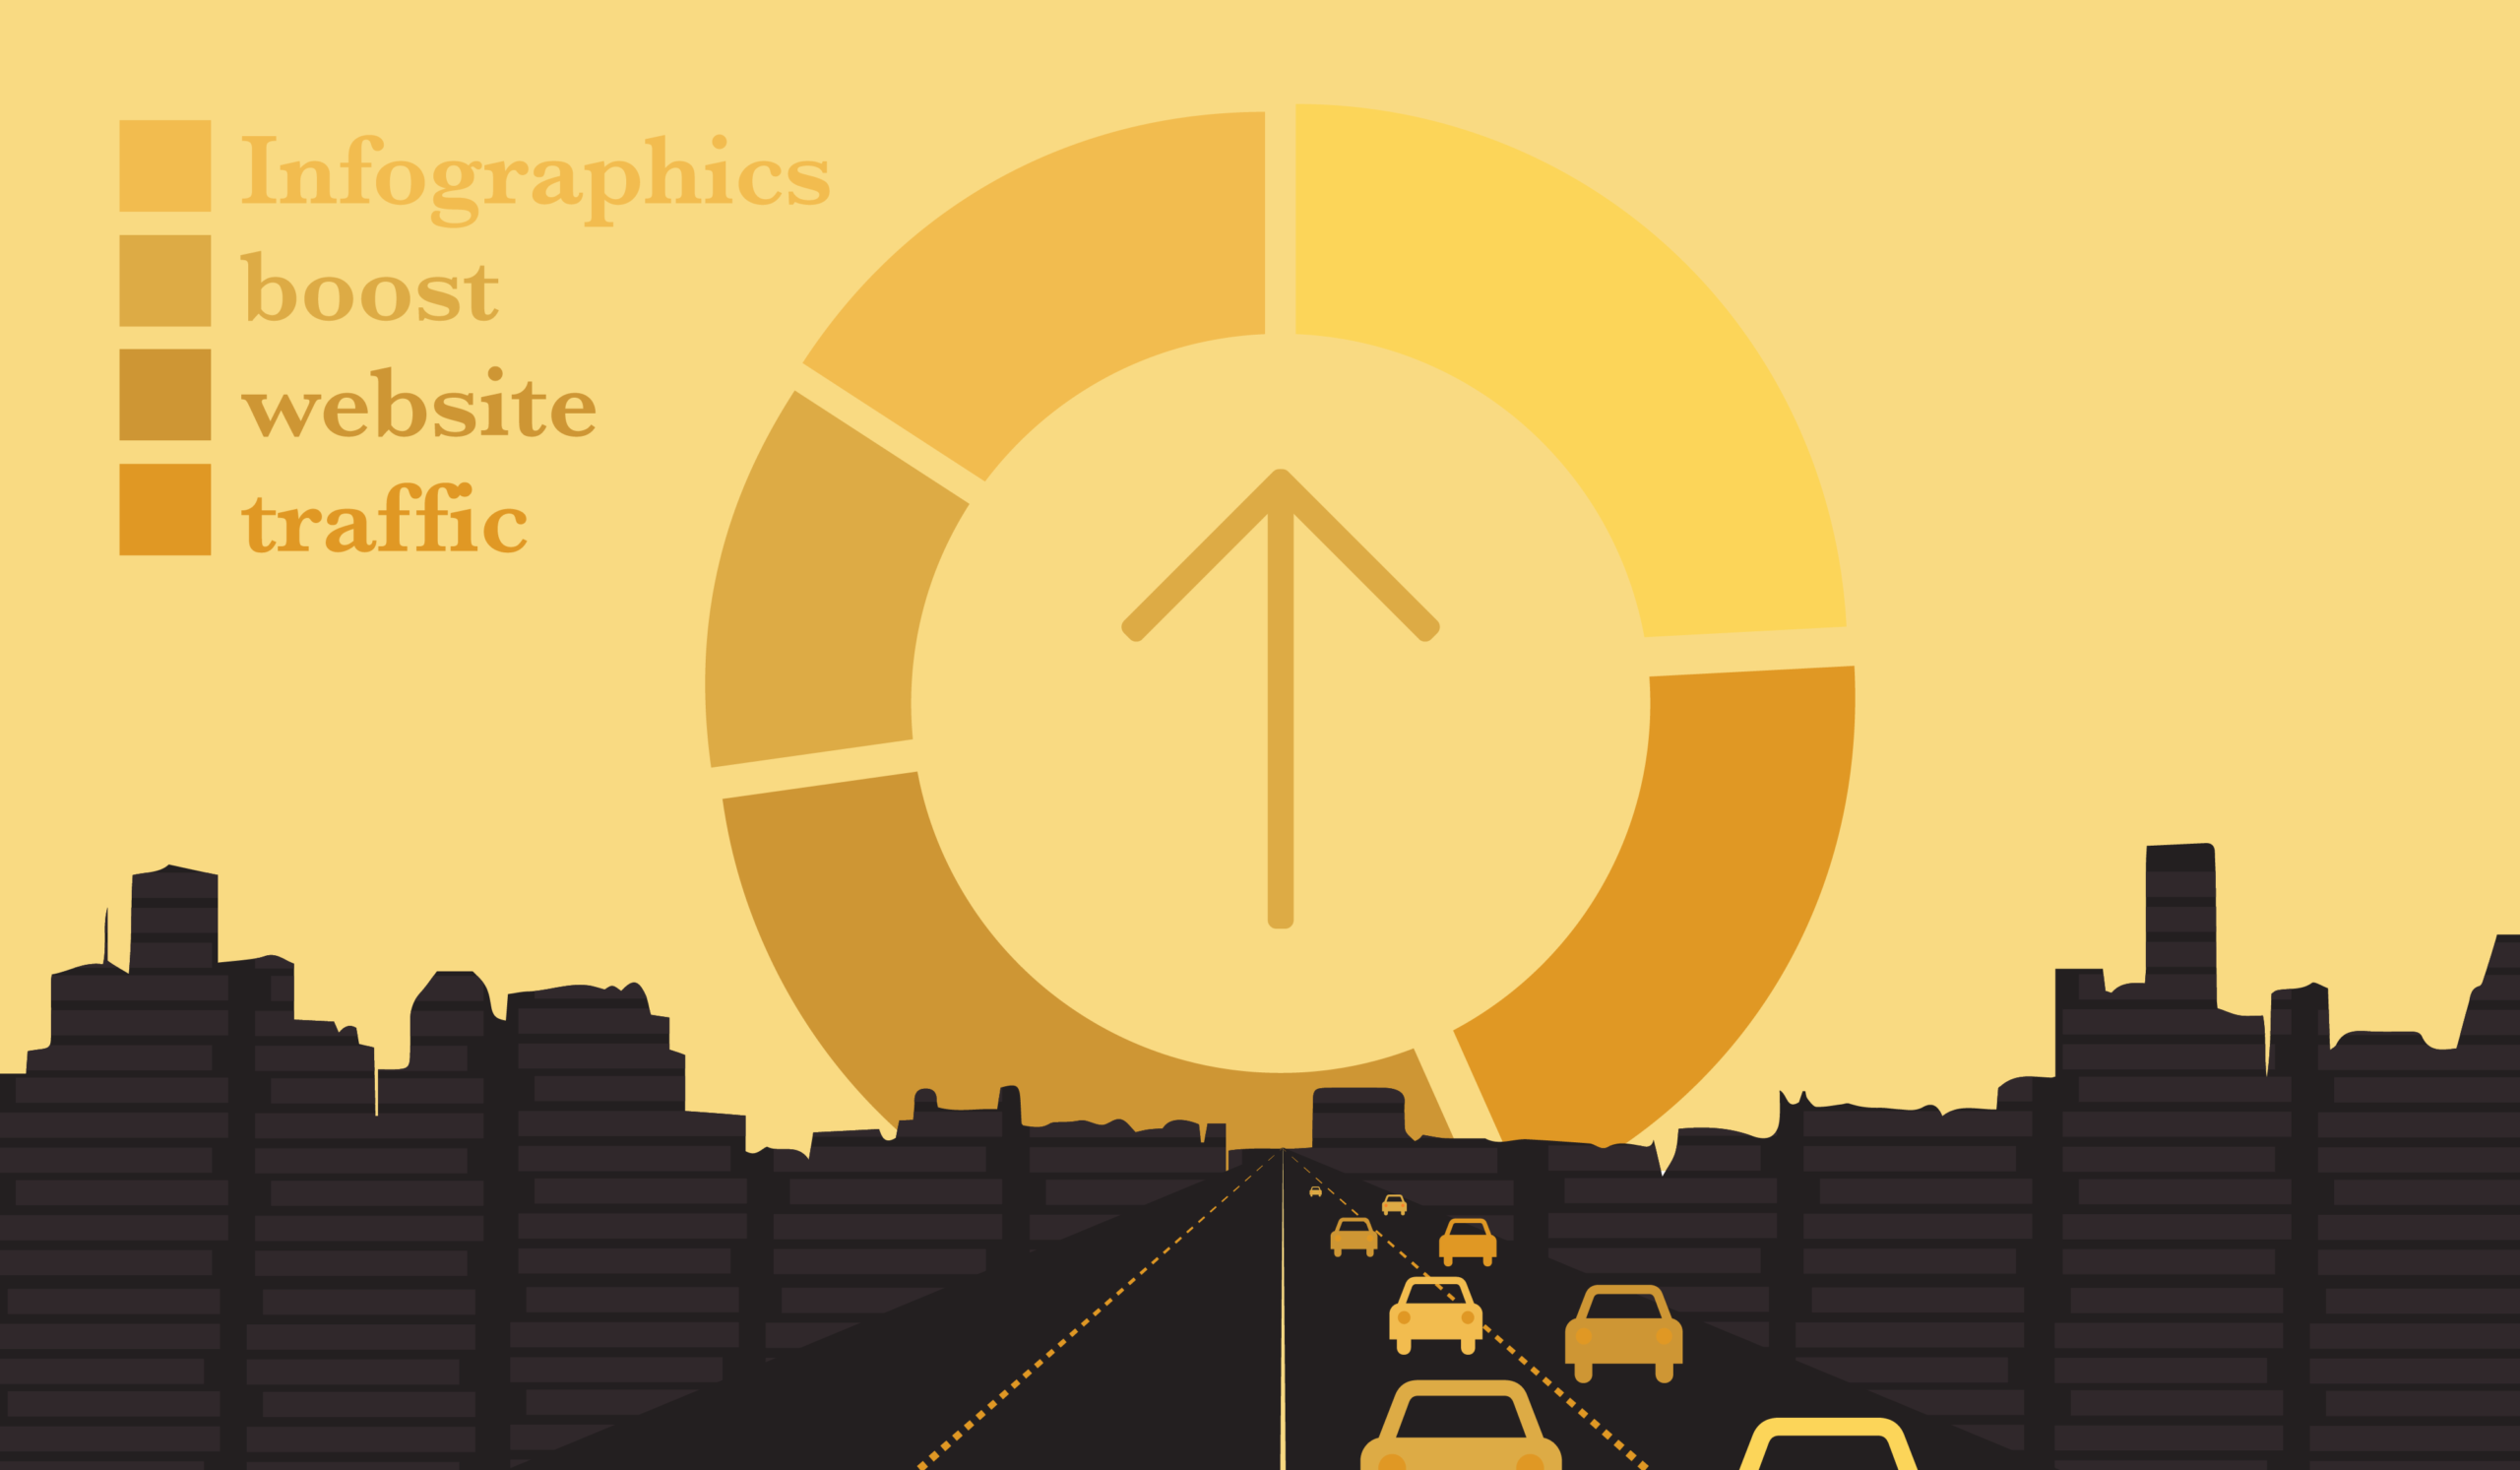 Illustration depicting how infographics can boost website traffic.